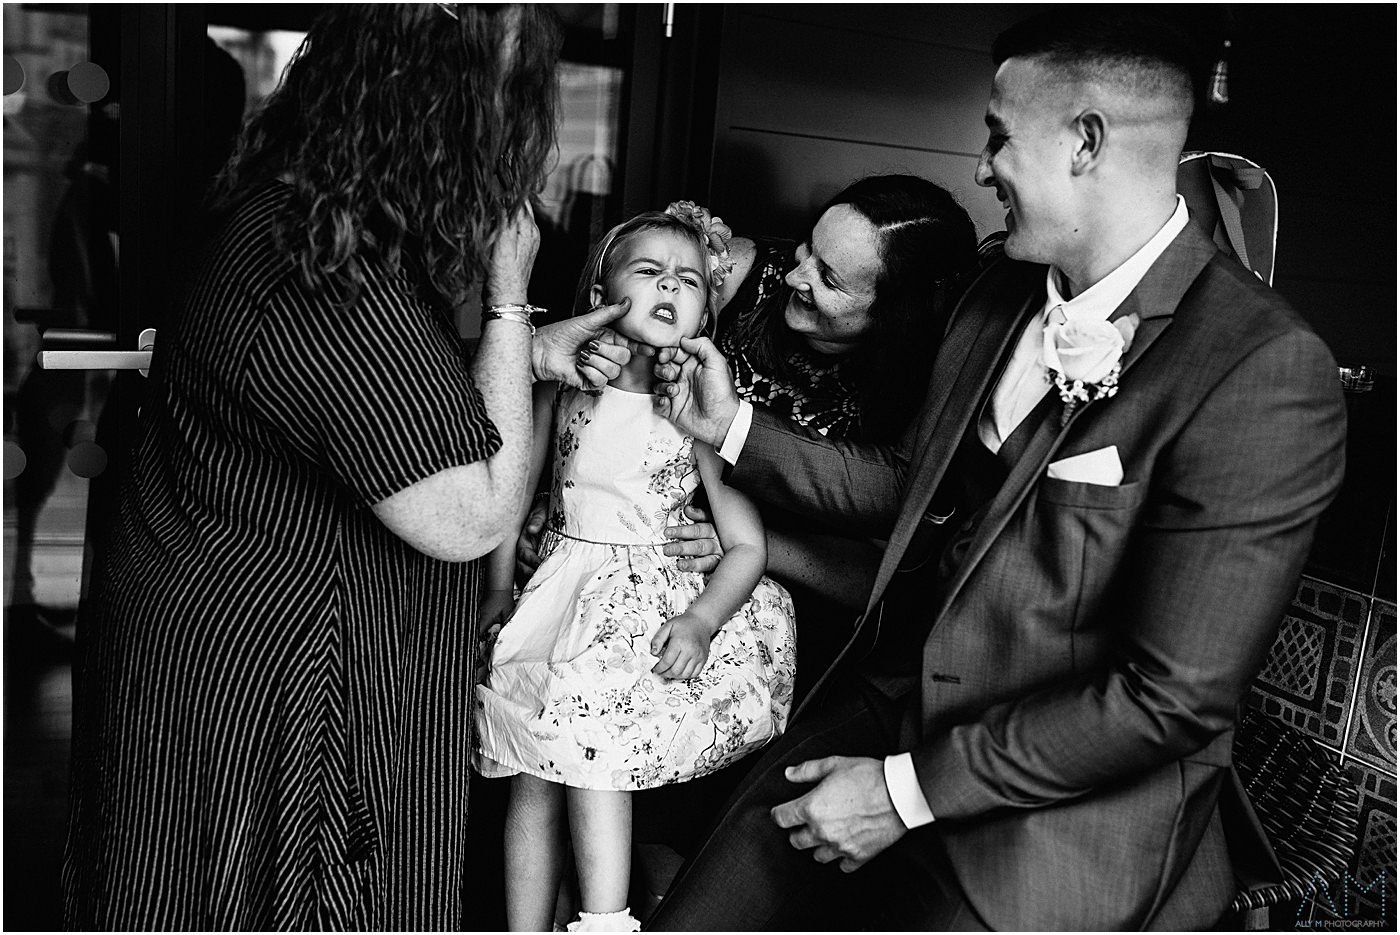 Kid pulling her face at Manchester wedding